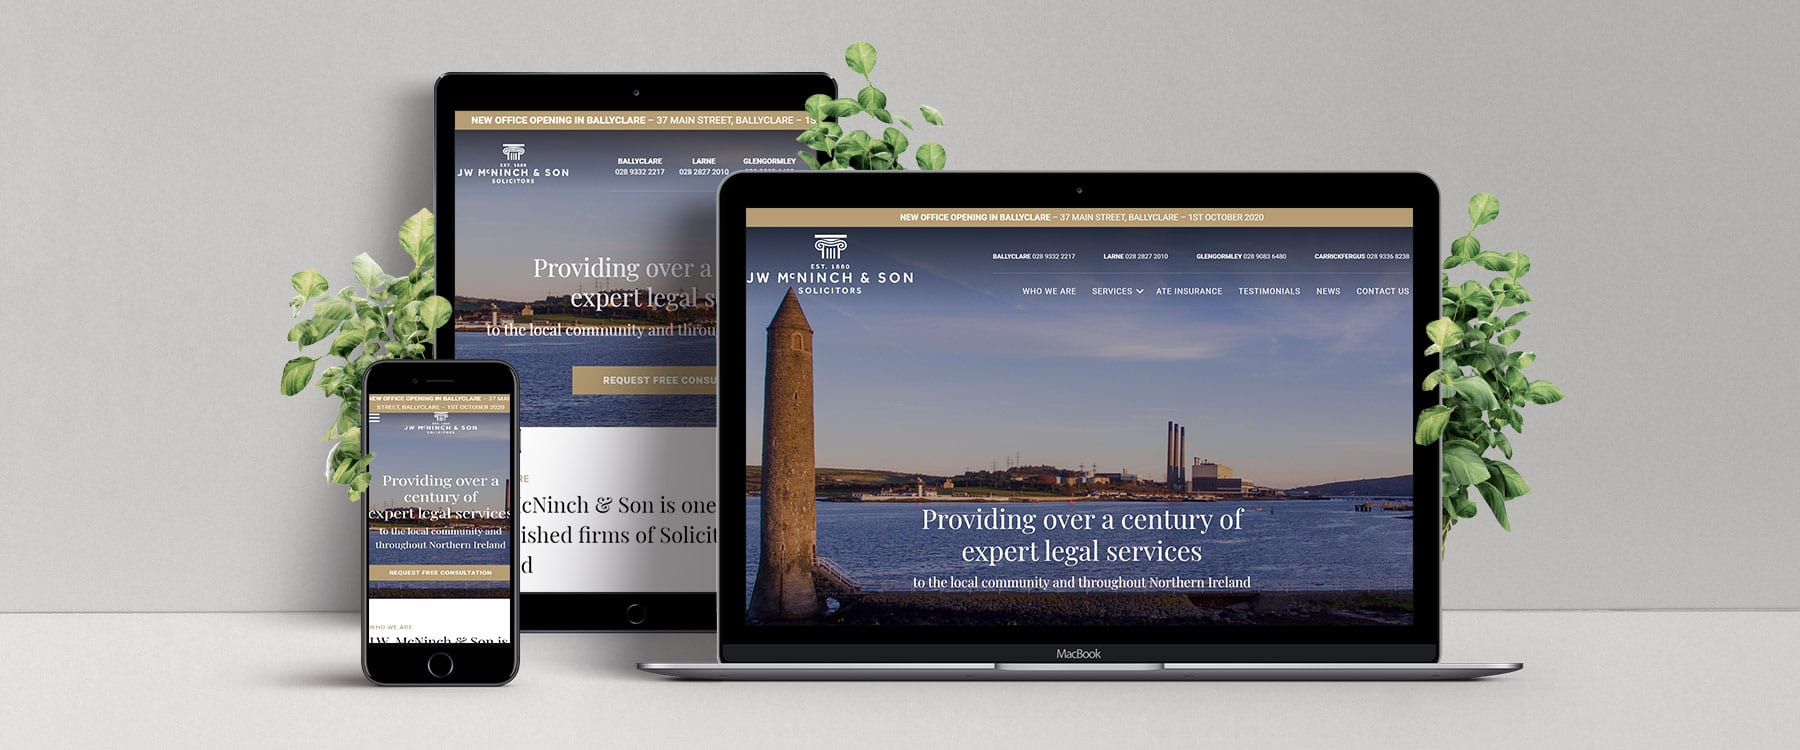 Professional Website for Northern Ireland Solicitors, JW McNinch & Son Image